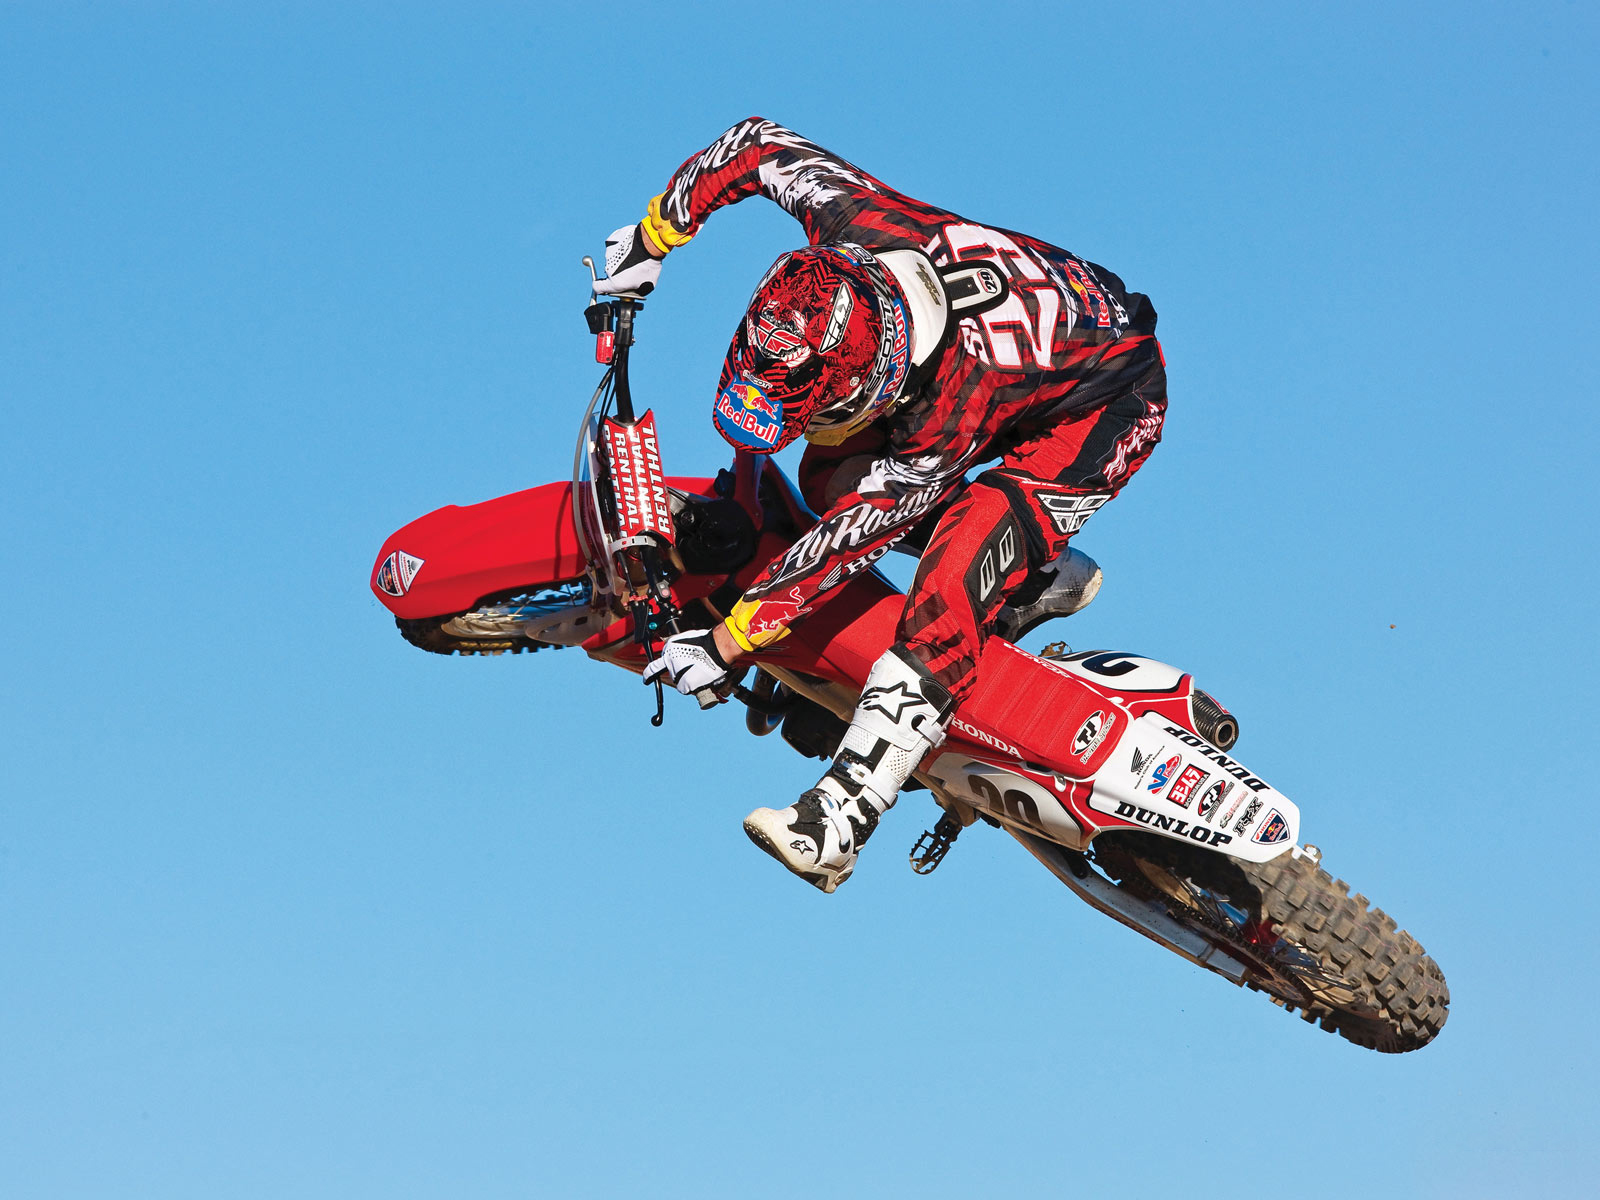 Download Wallpaper Free Download High quality Motocross Wallpaper Num ...